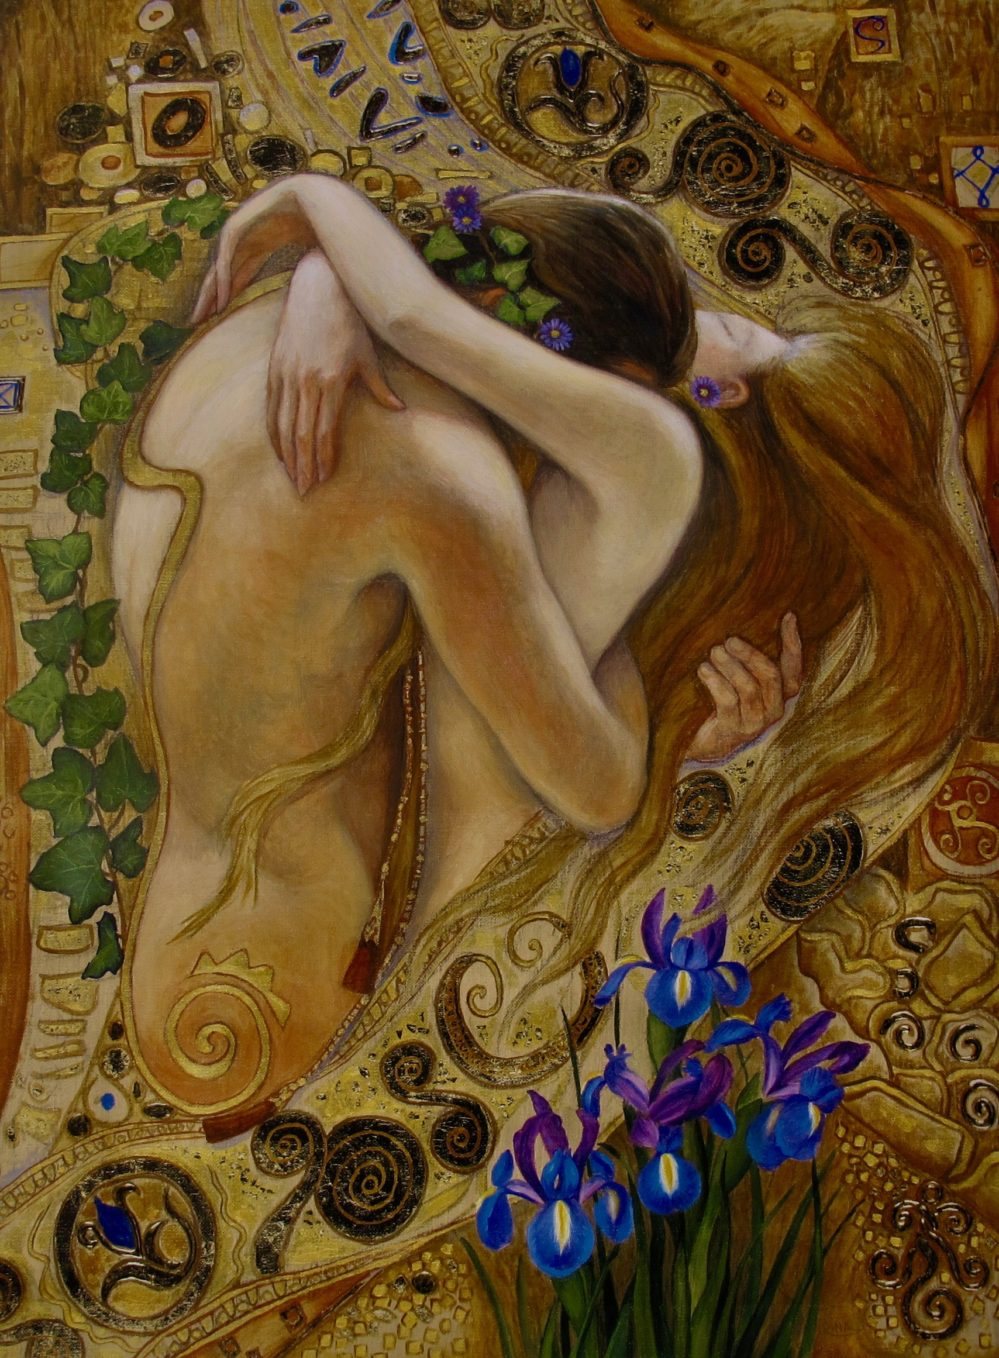 IRINA VITALIEVNA KARKABI Passion on canvas